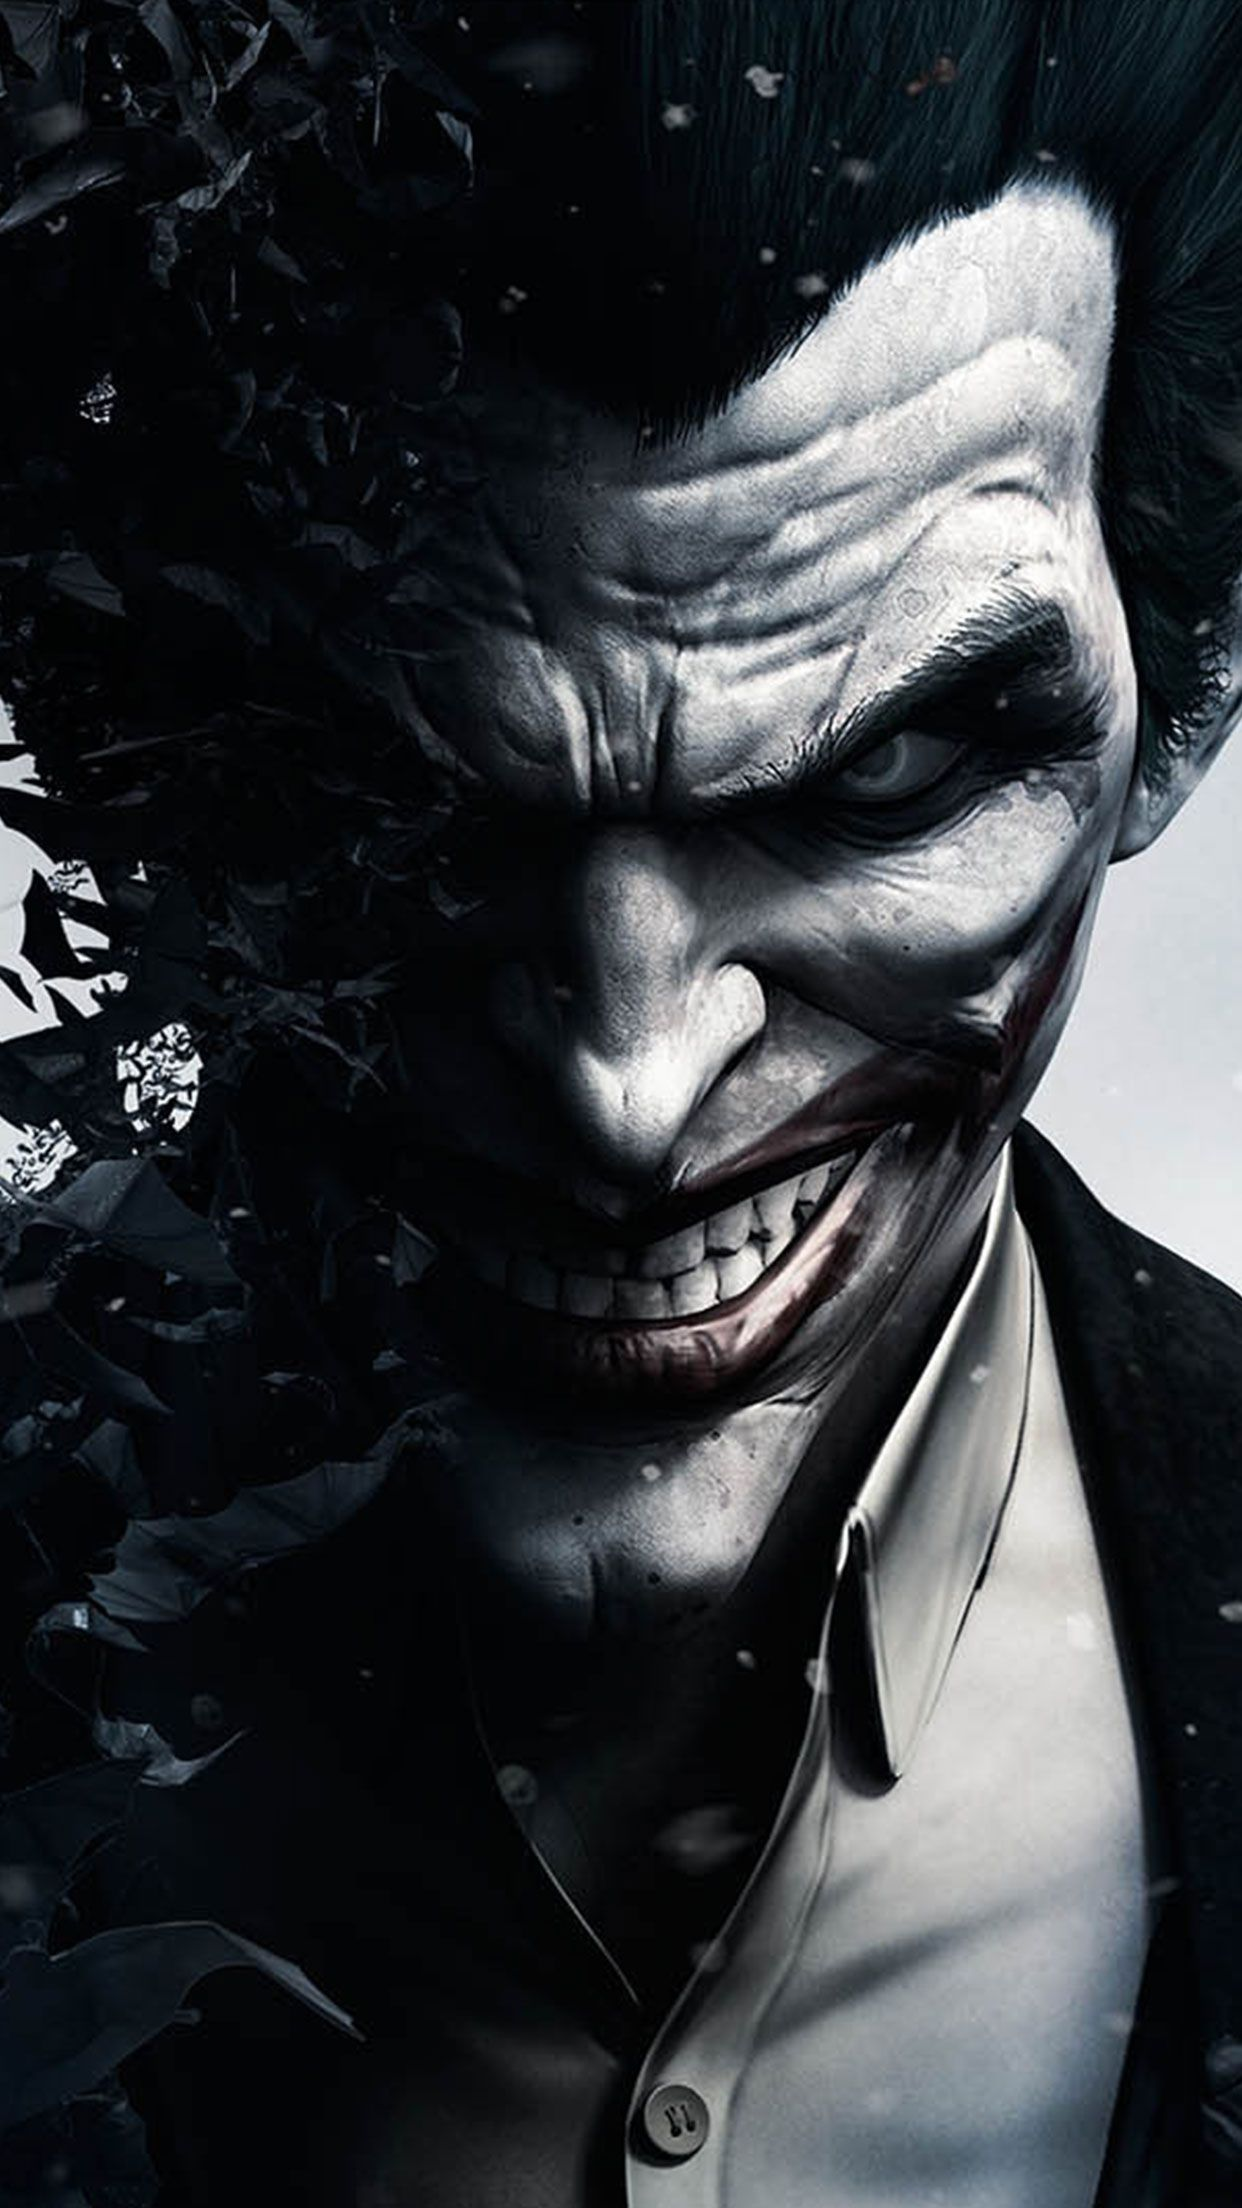 Batman Joker Game Wallpaper Iphone Android More On Wallzapp